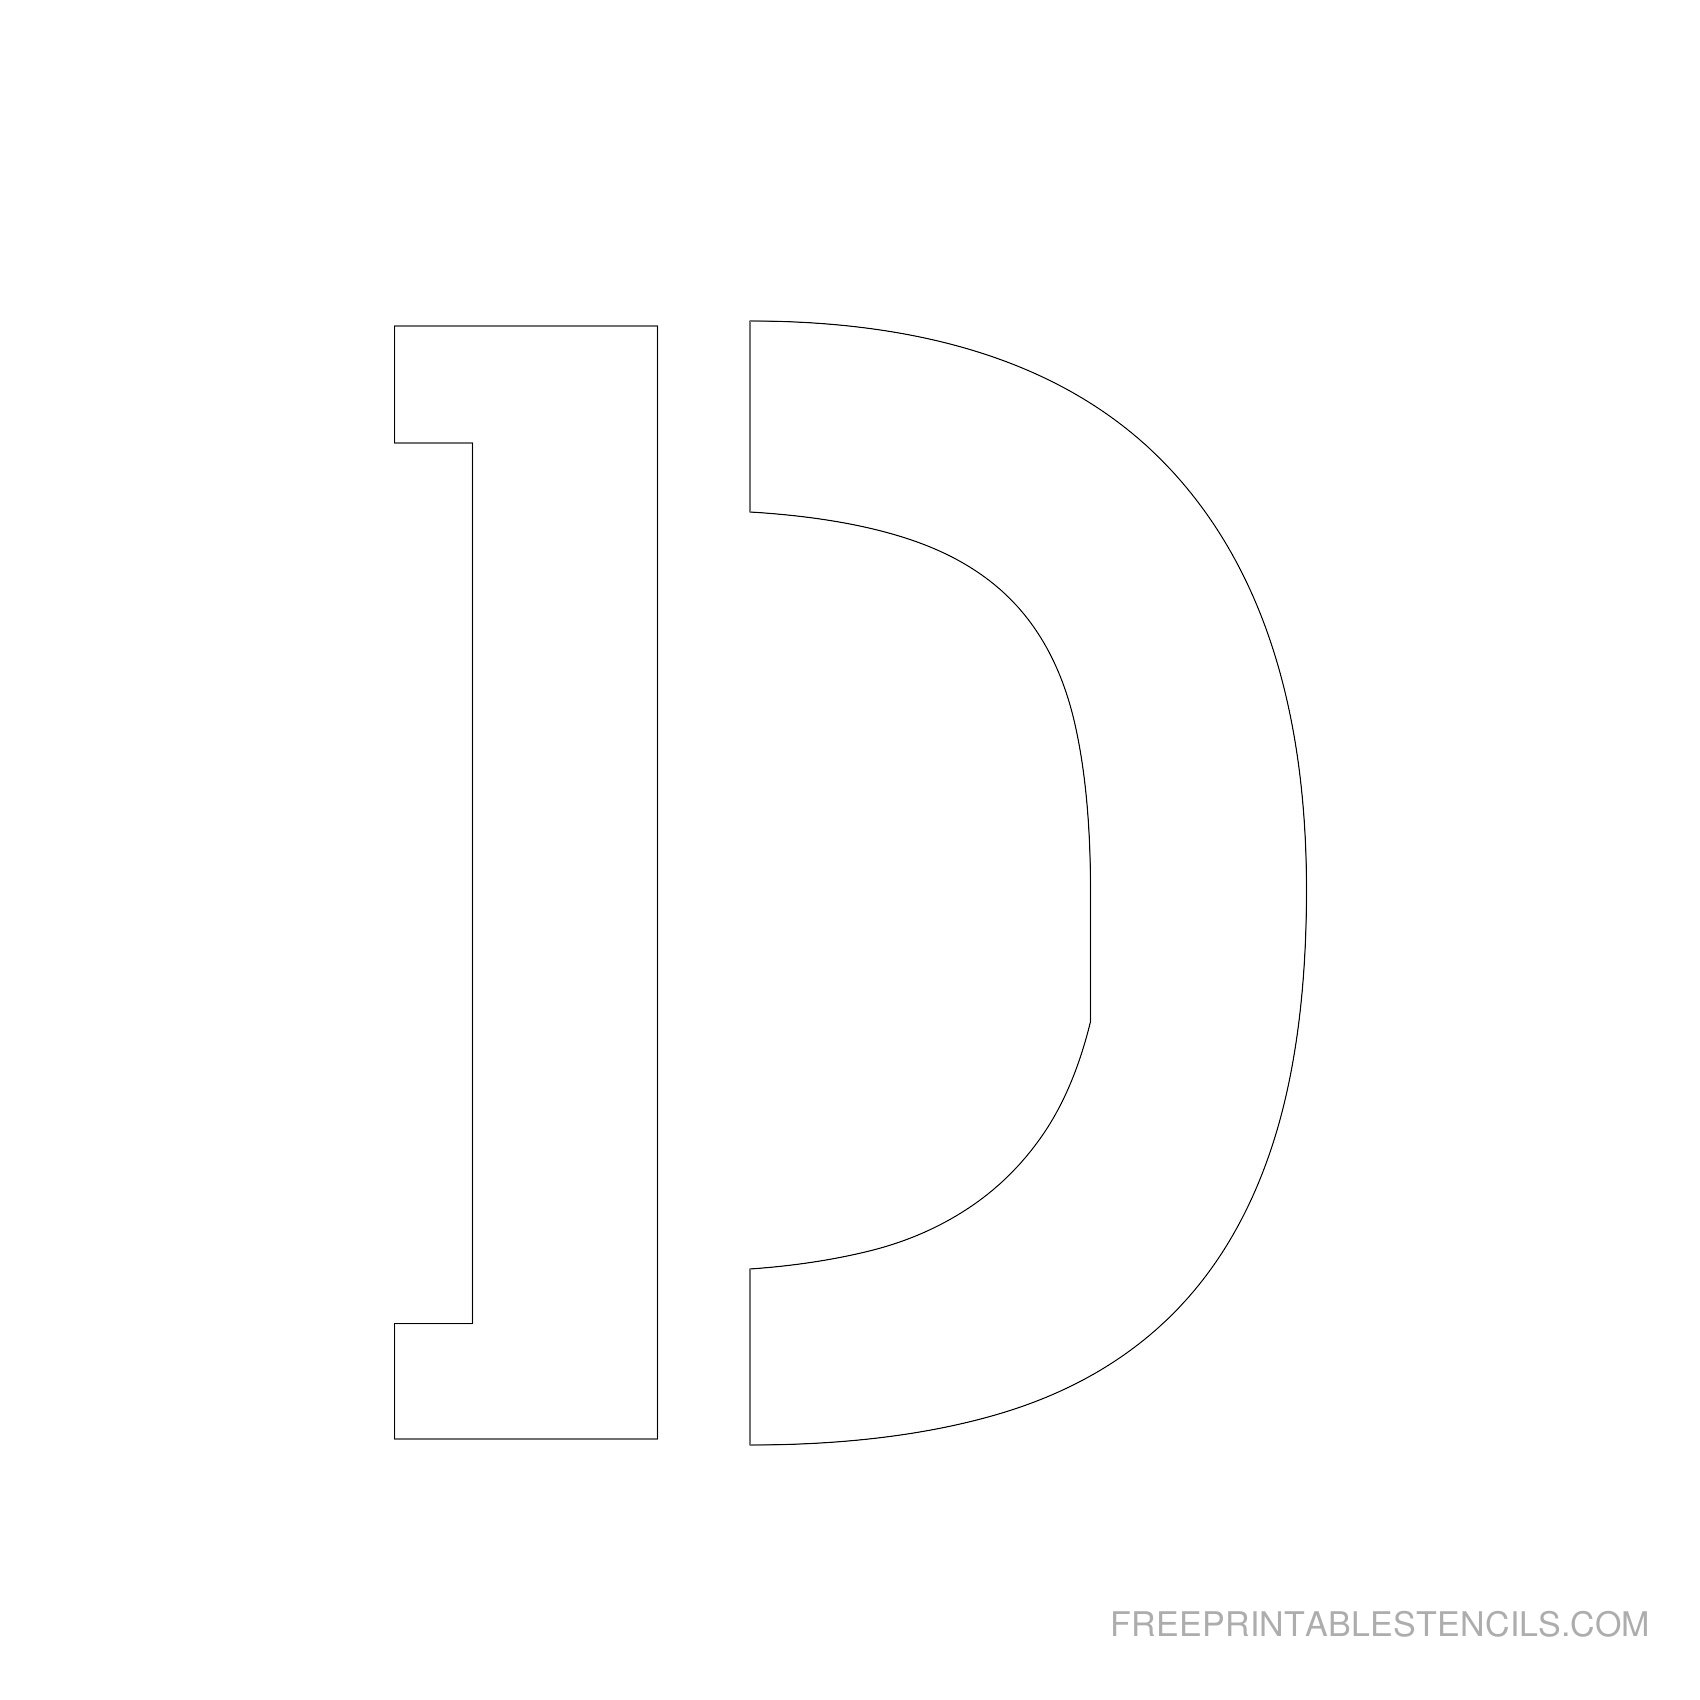 Letter Stencils To Print   Free Printable Stencils - Free Printable Letter Stencils